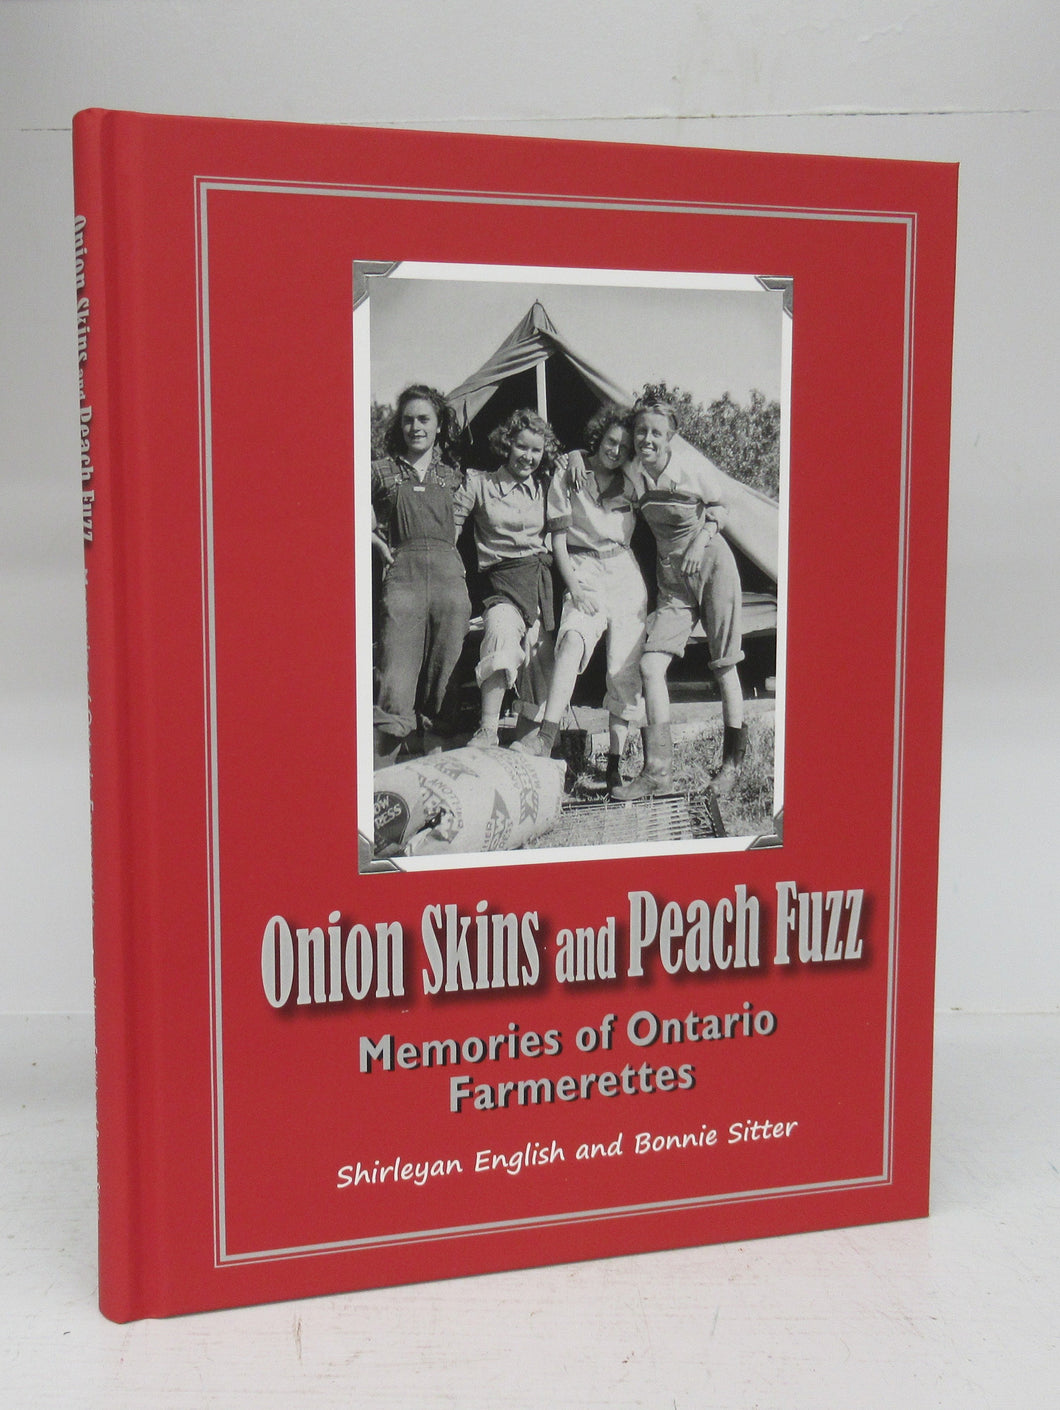 Onion Skins and Peach Fuzz: Memories of Ontario Farmerettes